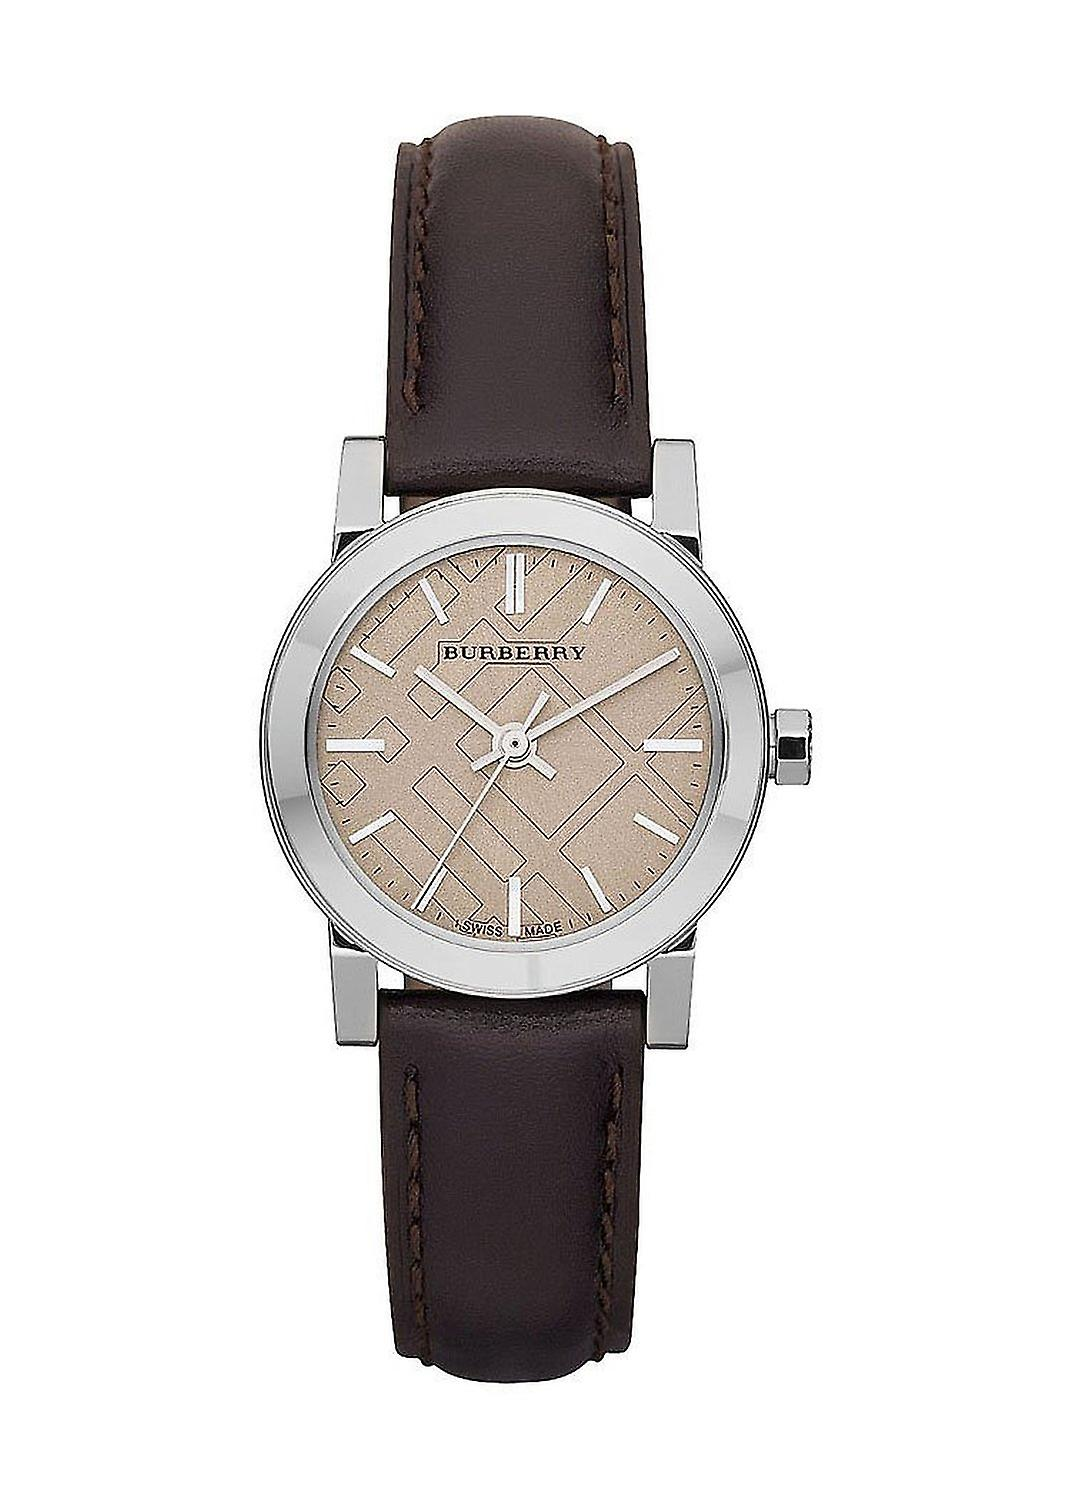 Burberry Bu9208 Brown Leather Strap Cream Dial Women's Watch